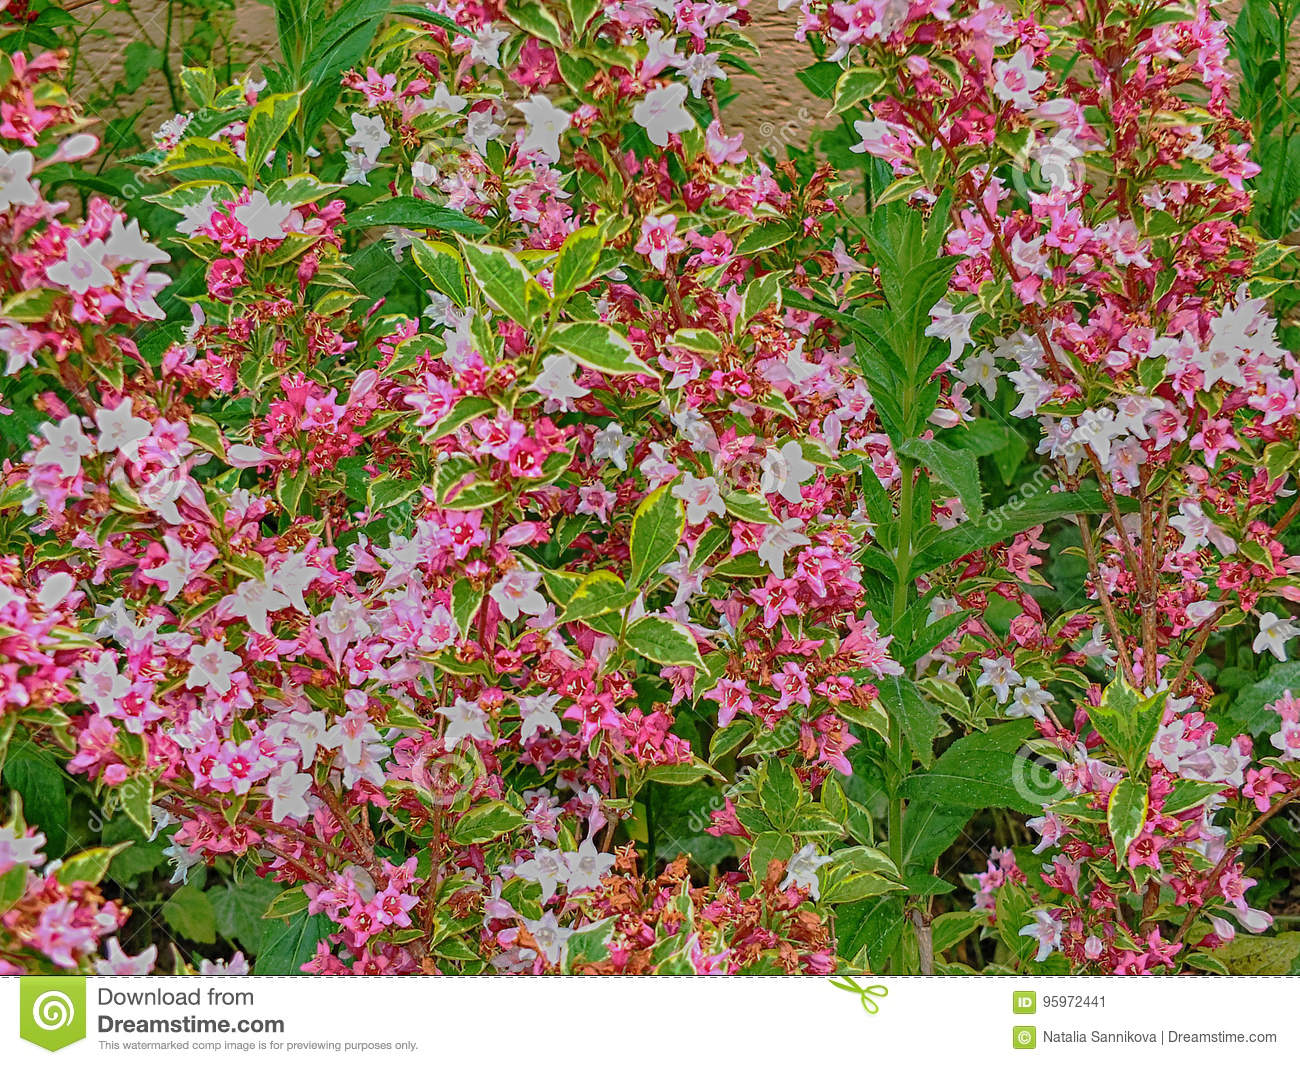 Flowers flora bushes pink green outside stock image image of background of many small pink white flowers on the bush branches mightylinksfo